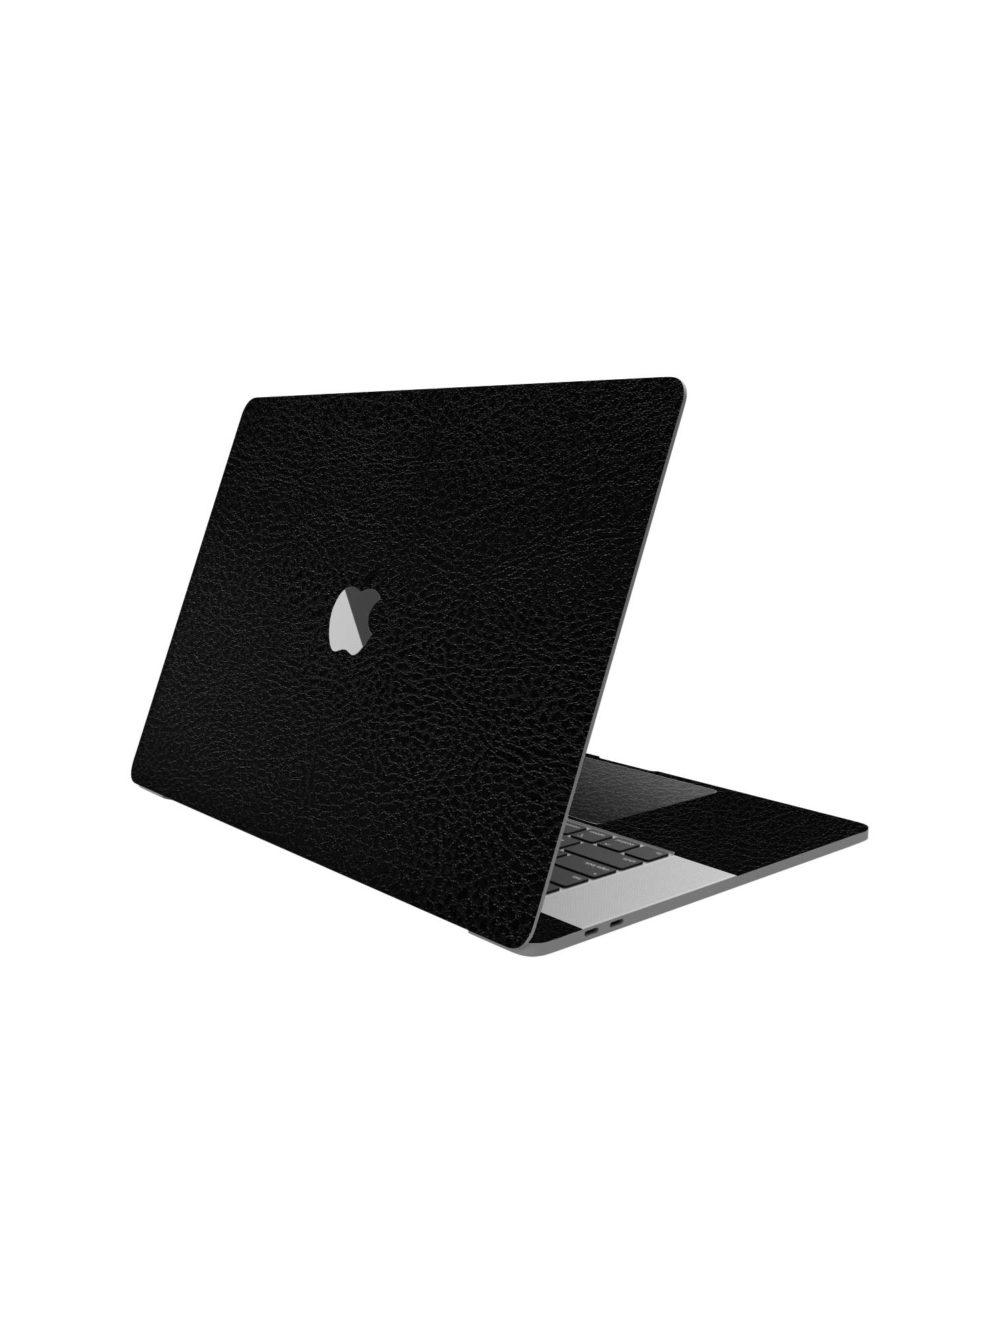 Black Leather Skin for Apple Macbook Pro M1 2020